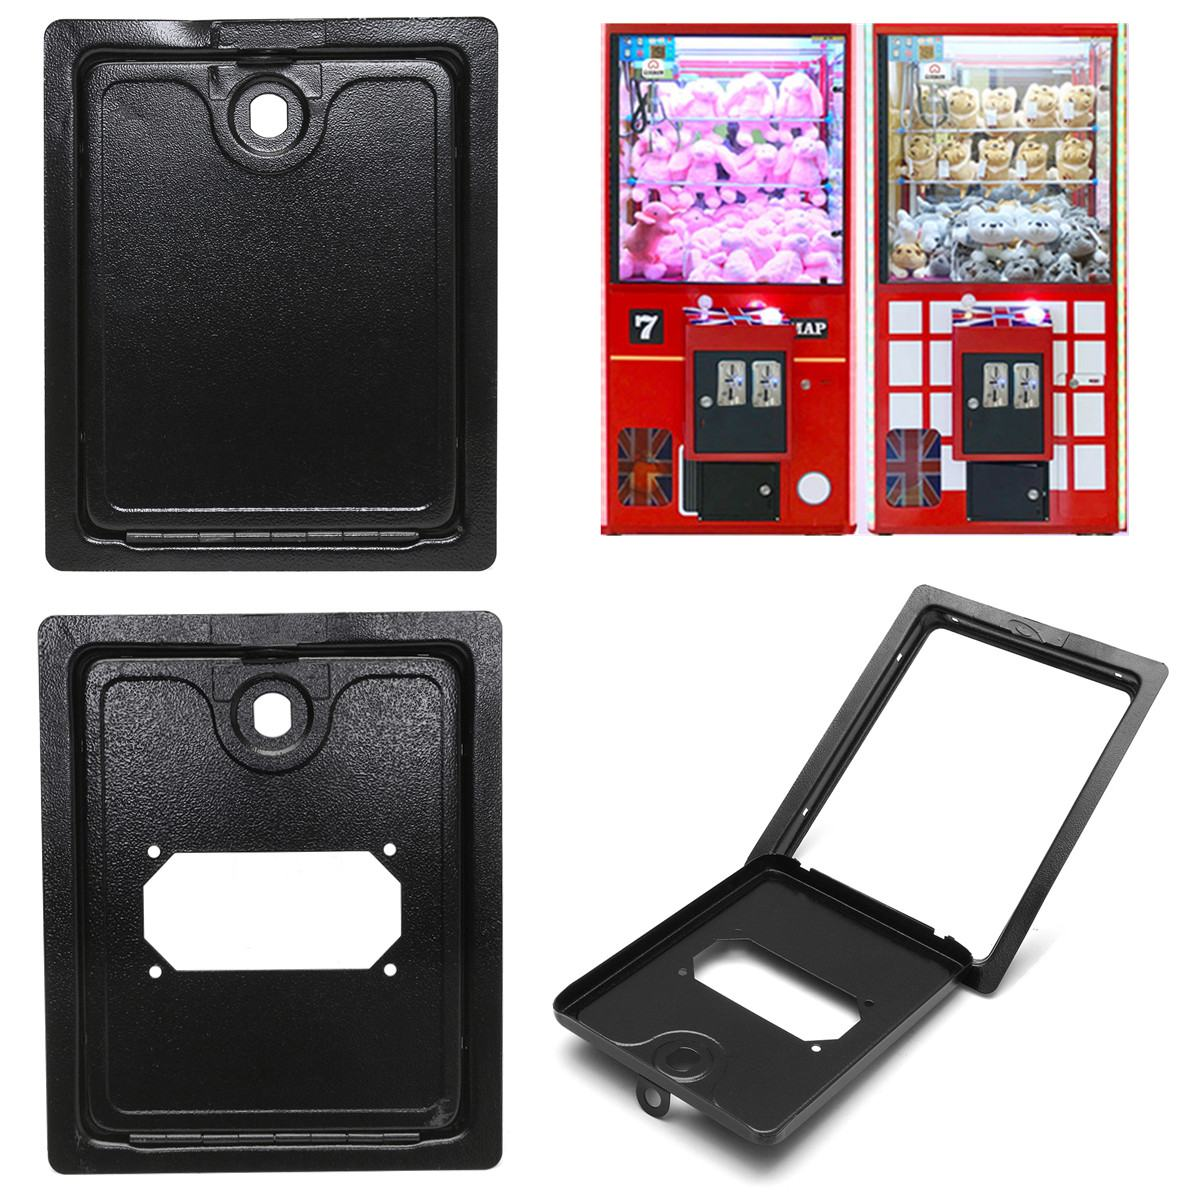 Arcade Game Coin Door Access Sturdy Reliable For Coin Acceptor Jamma Mame Top/Buttom Door Access To Cabinet Cash Box